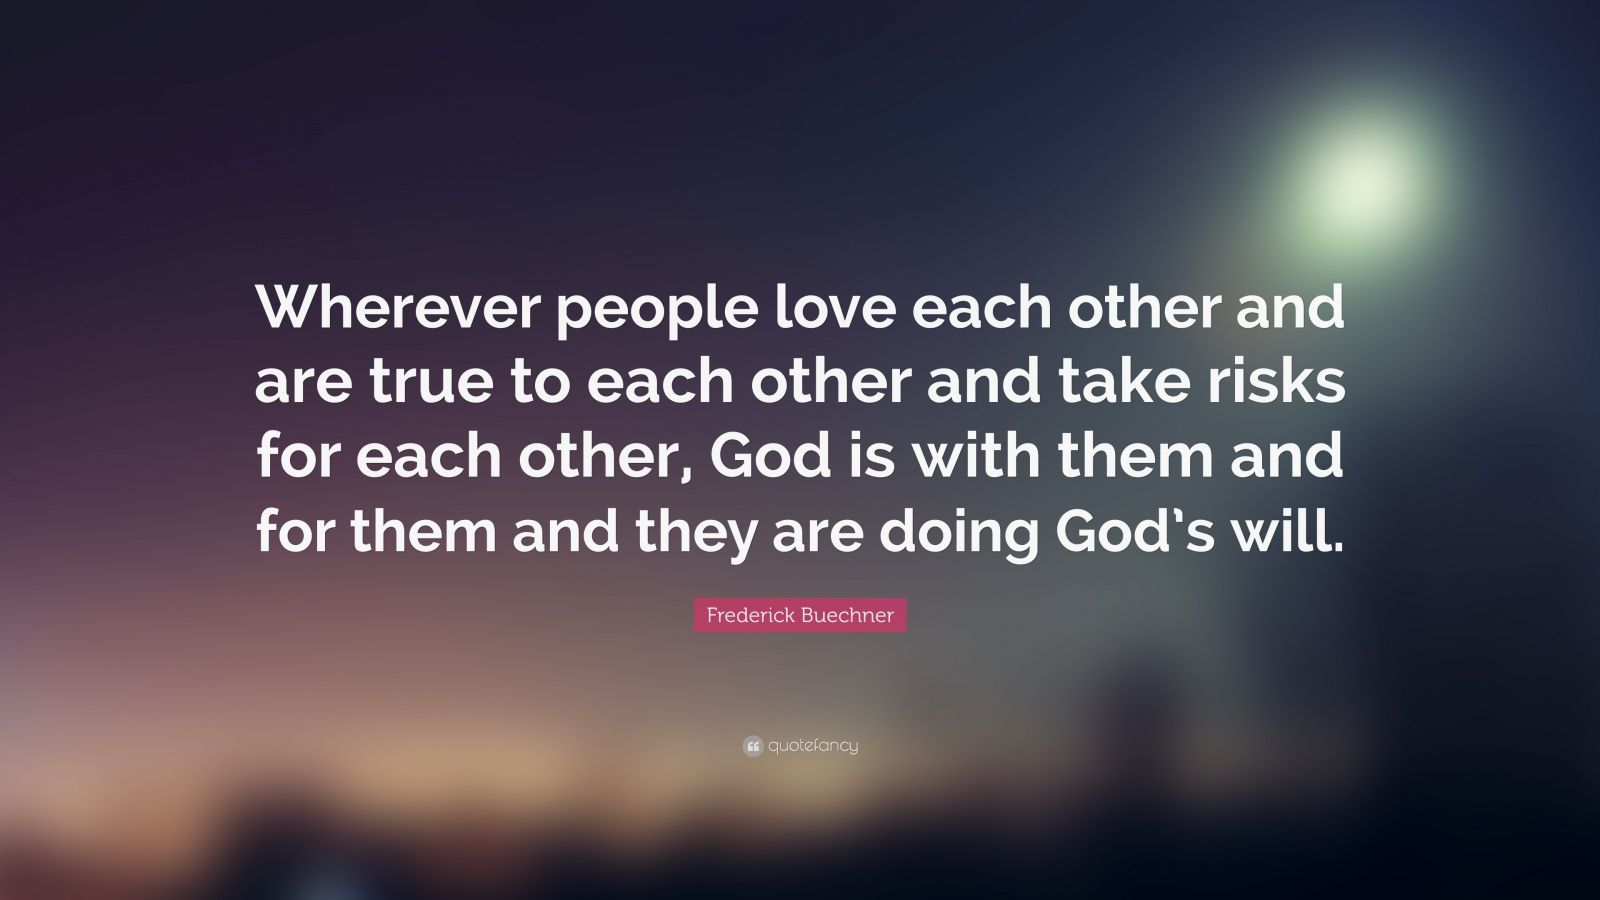 Wallpaper Love Each Other : Frederick Buechner Quote: ?Wherever people love each other and are true to each other and take ...